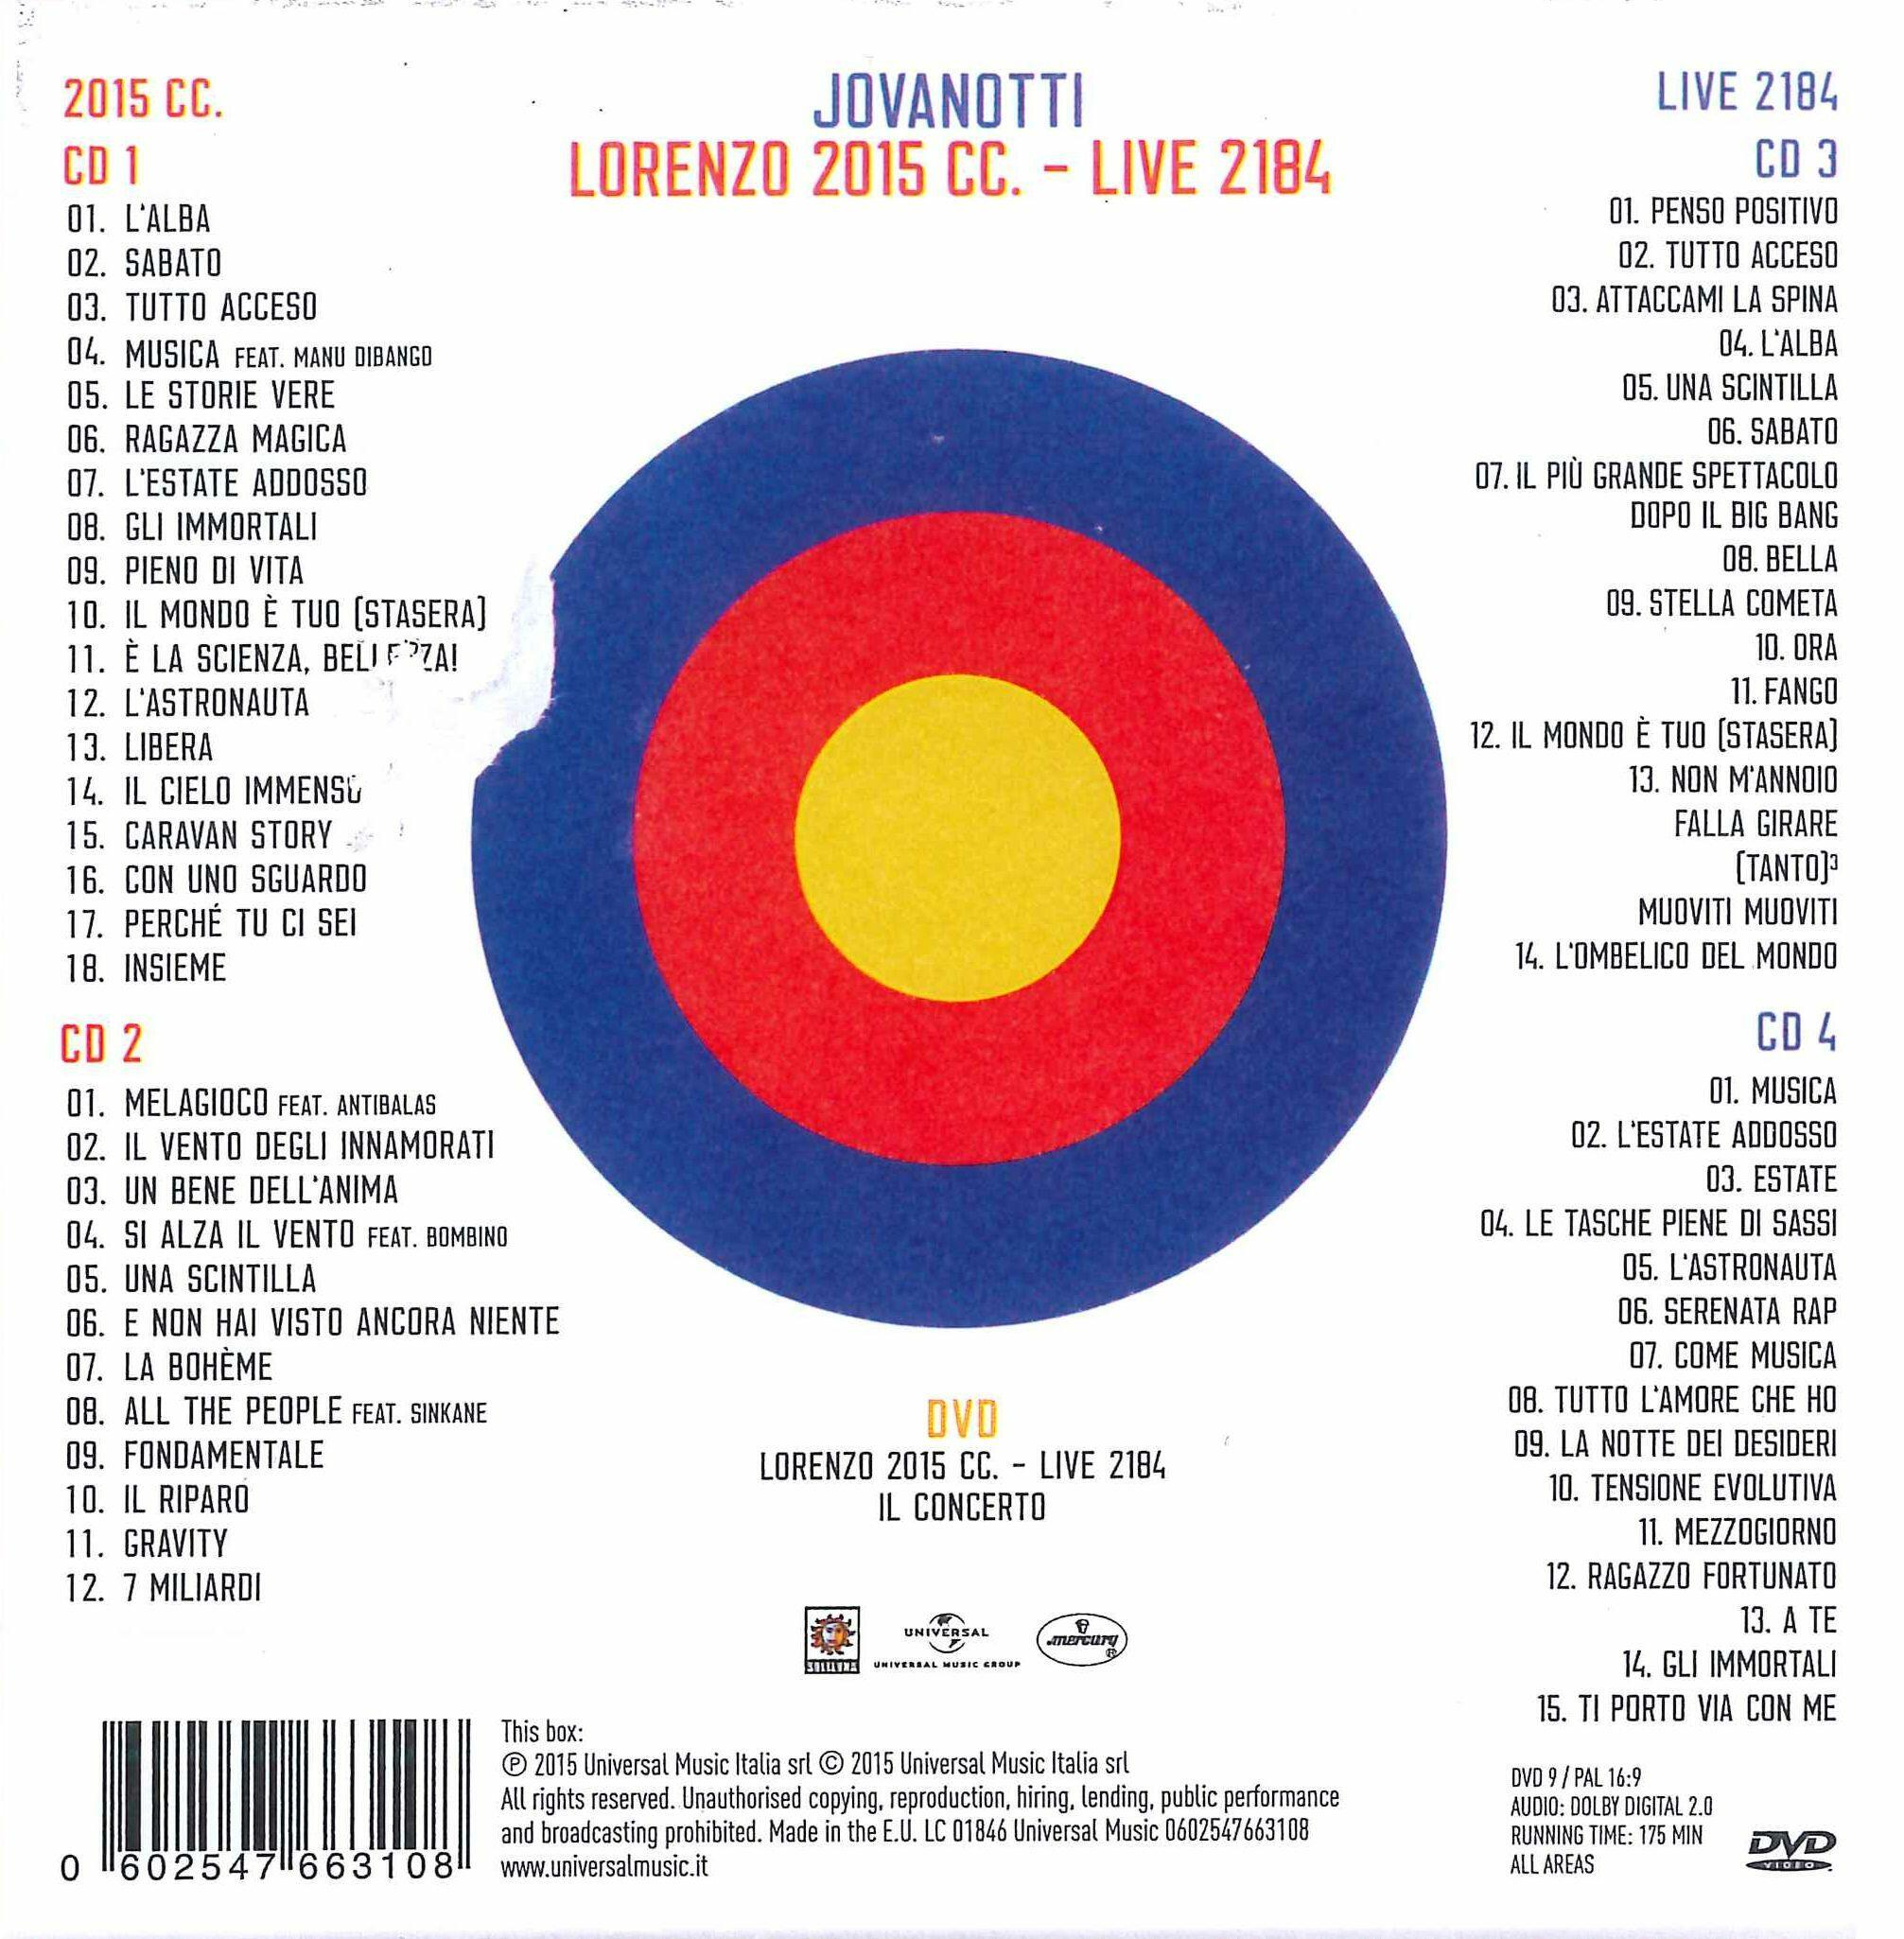 Lorenzo 2015 cc live 2184 jovanotti cd ibs for Ultimo cd di jovanotti